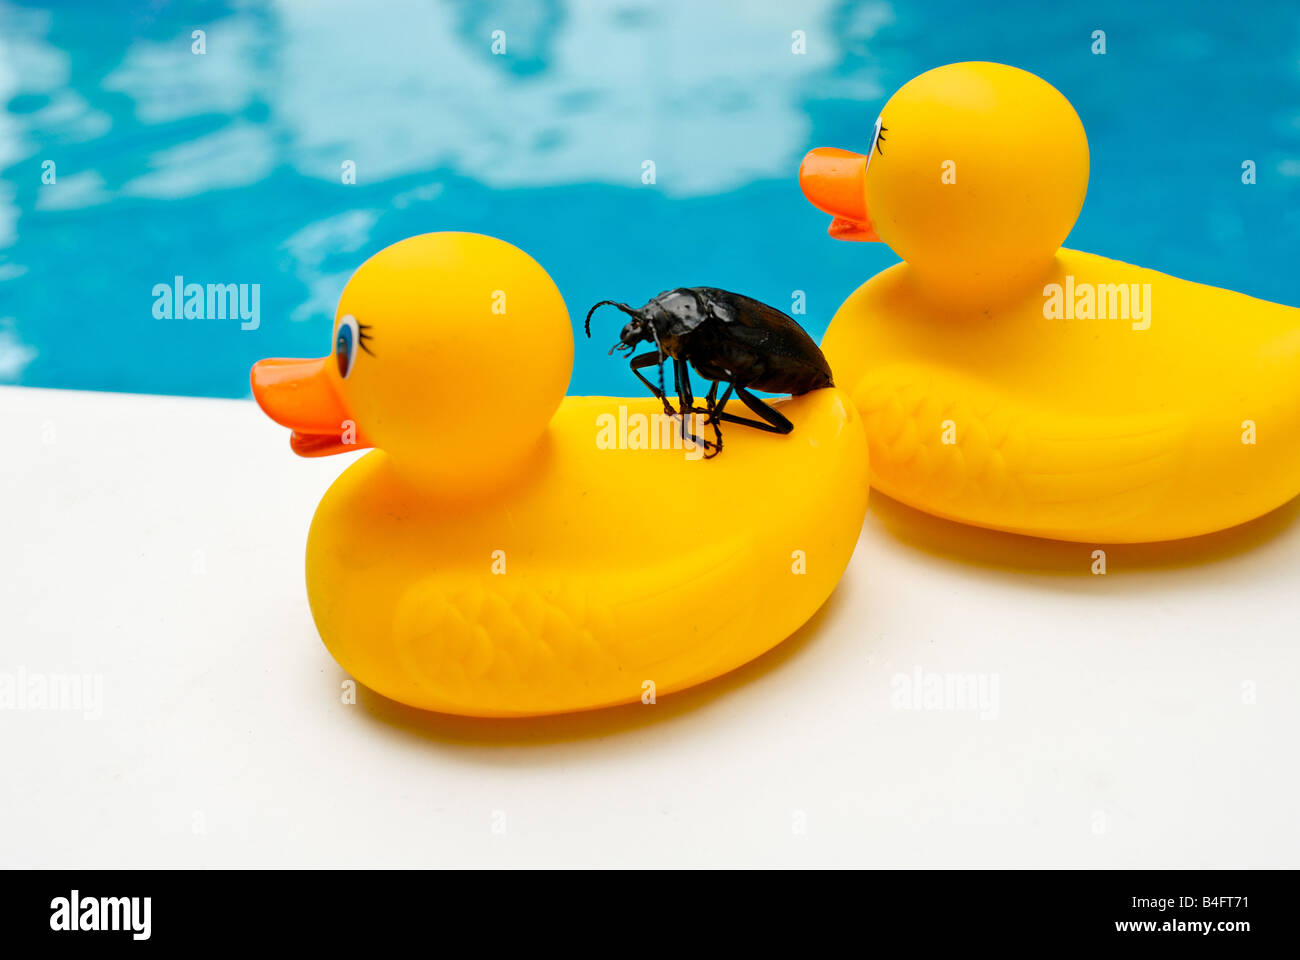 a large black water bug hitches a ride on an unknowing rubber